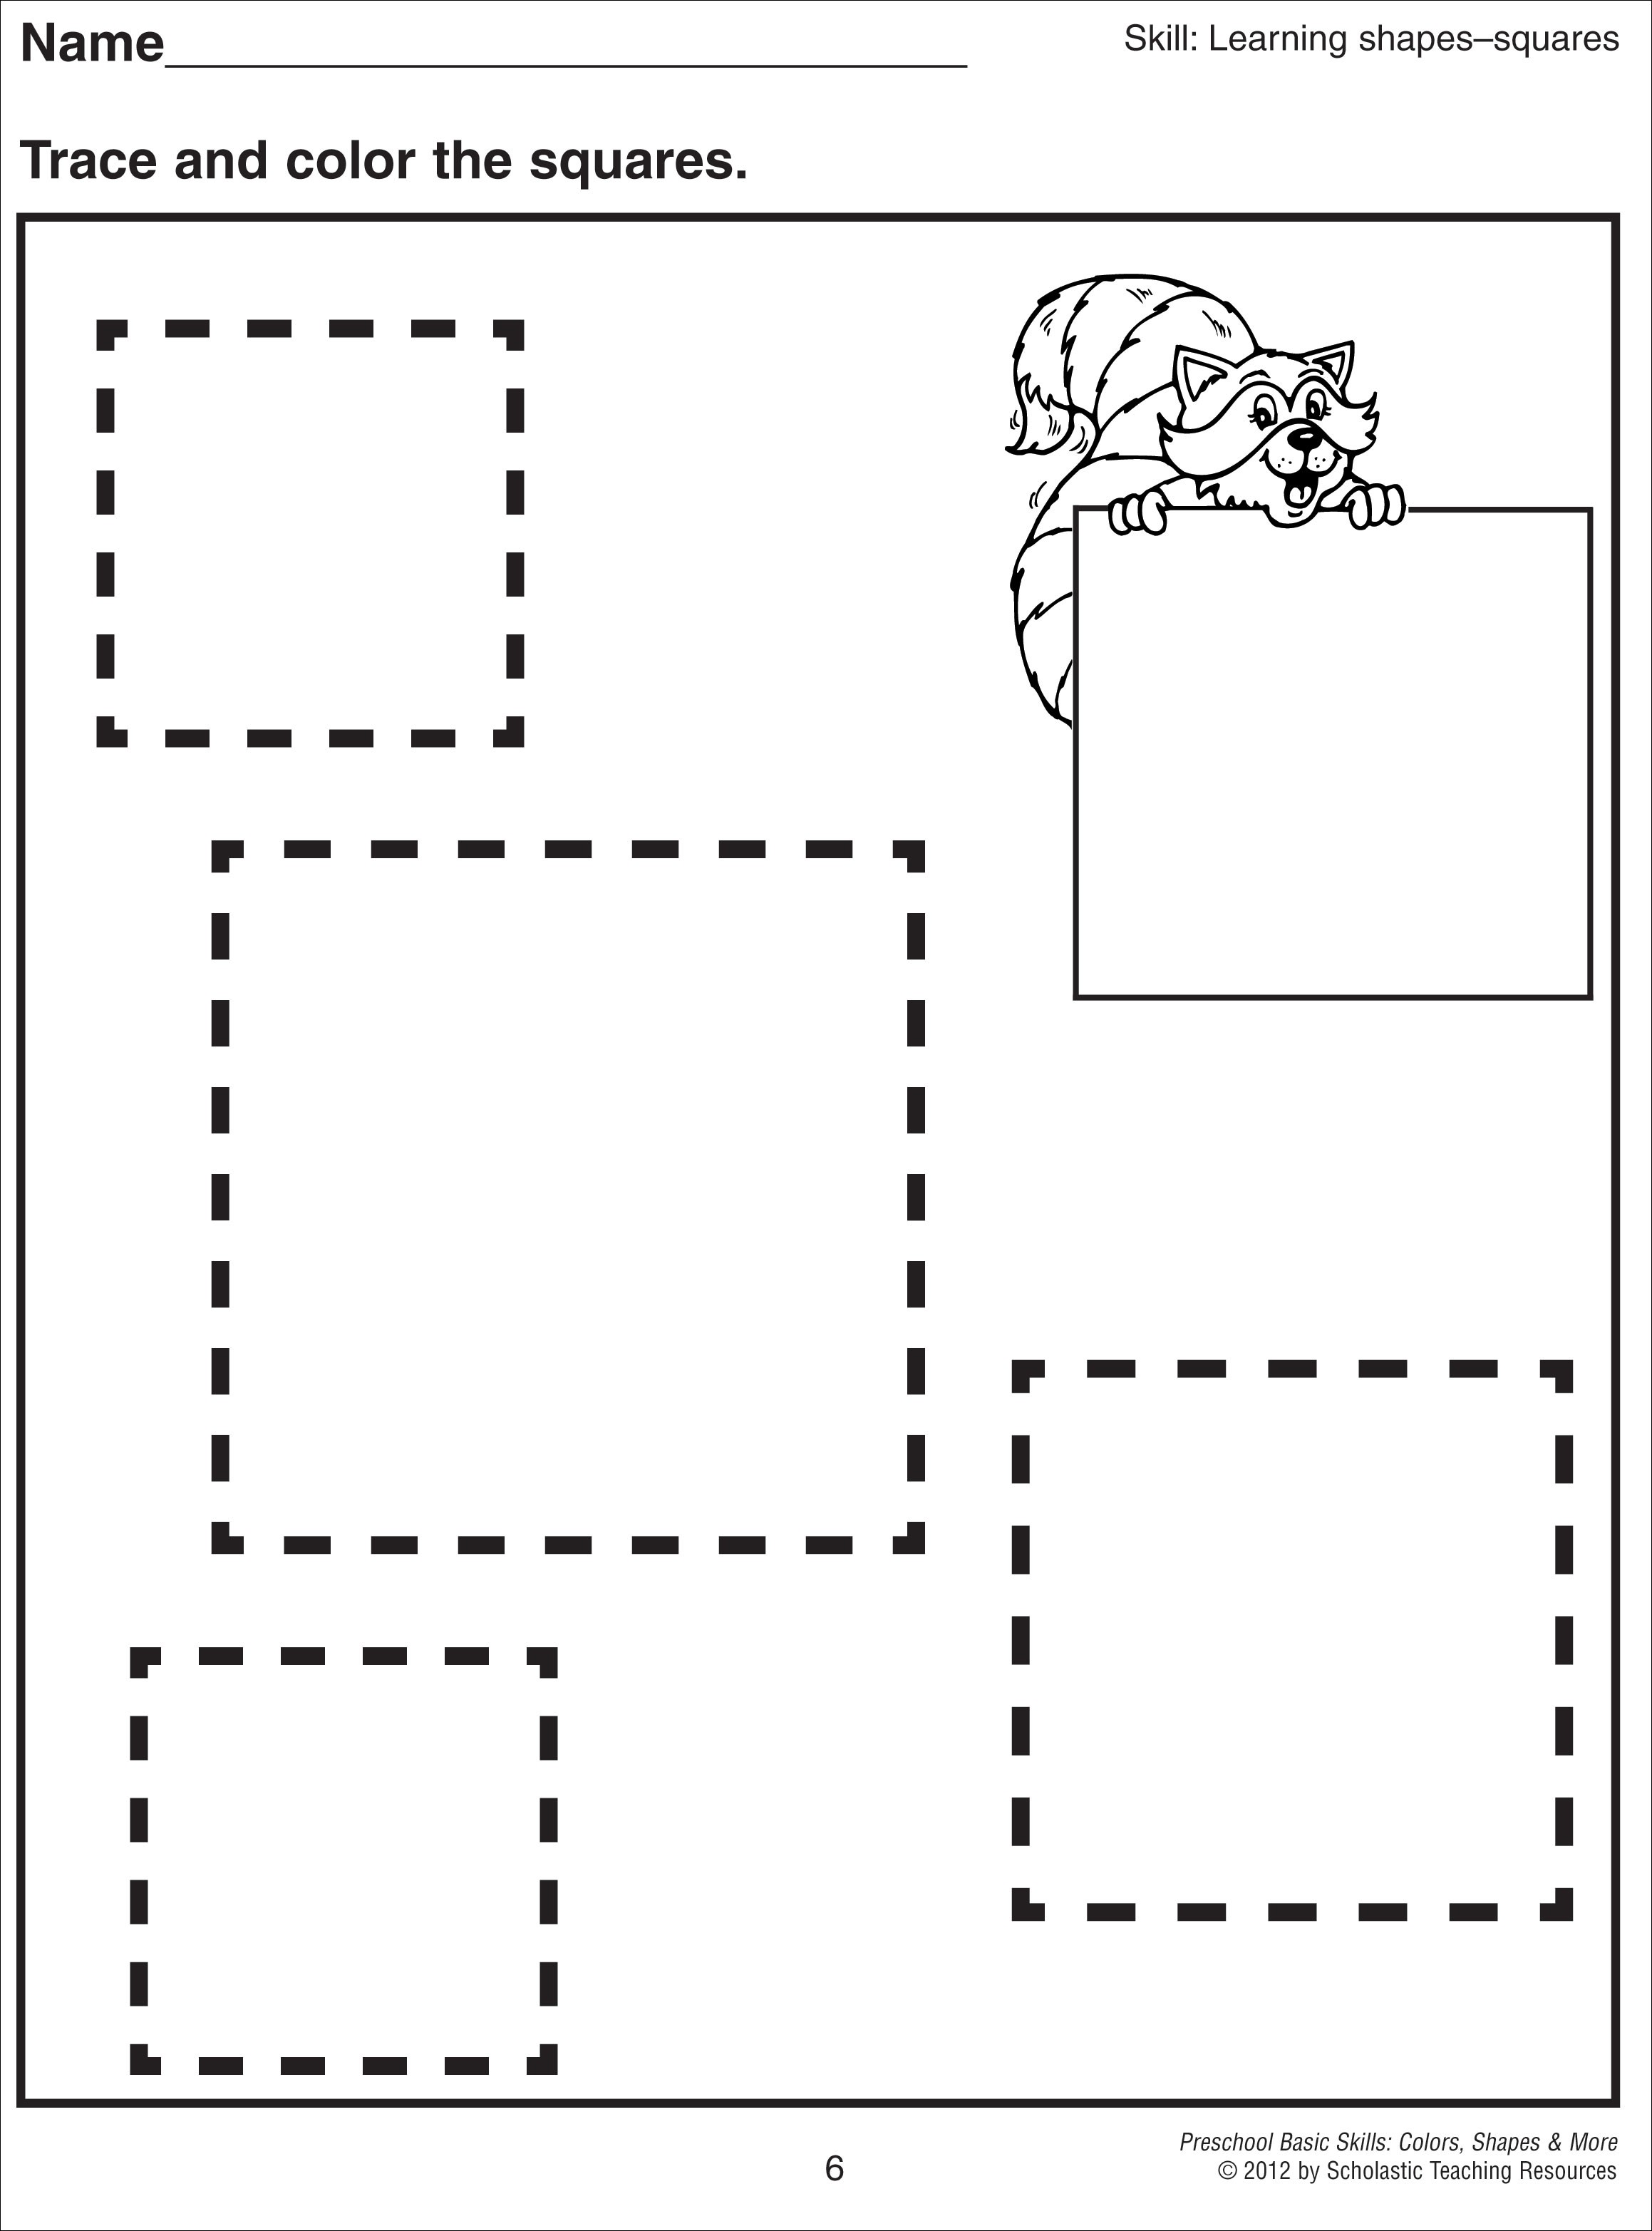 Printable Square Shapes Worksheets